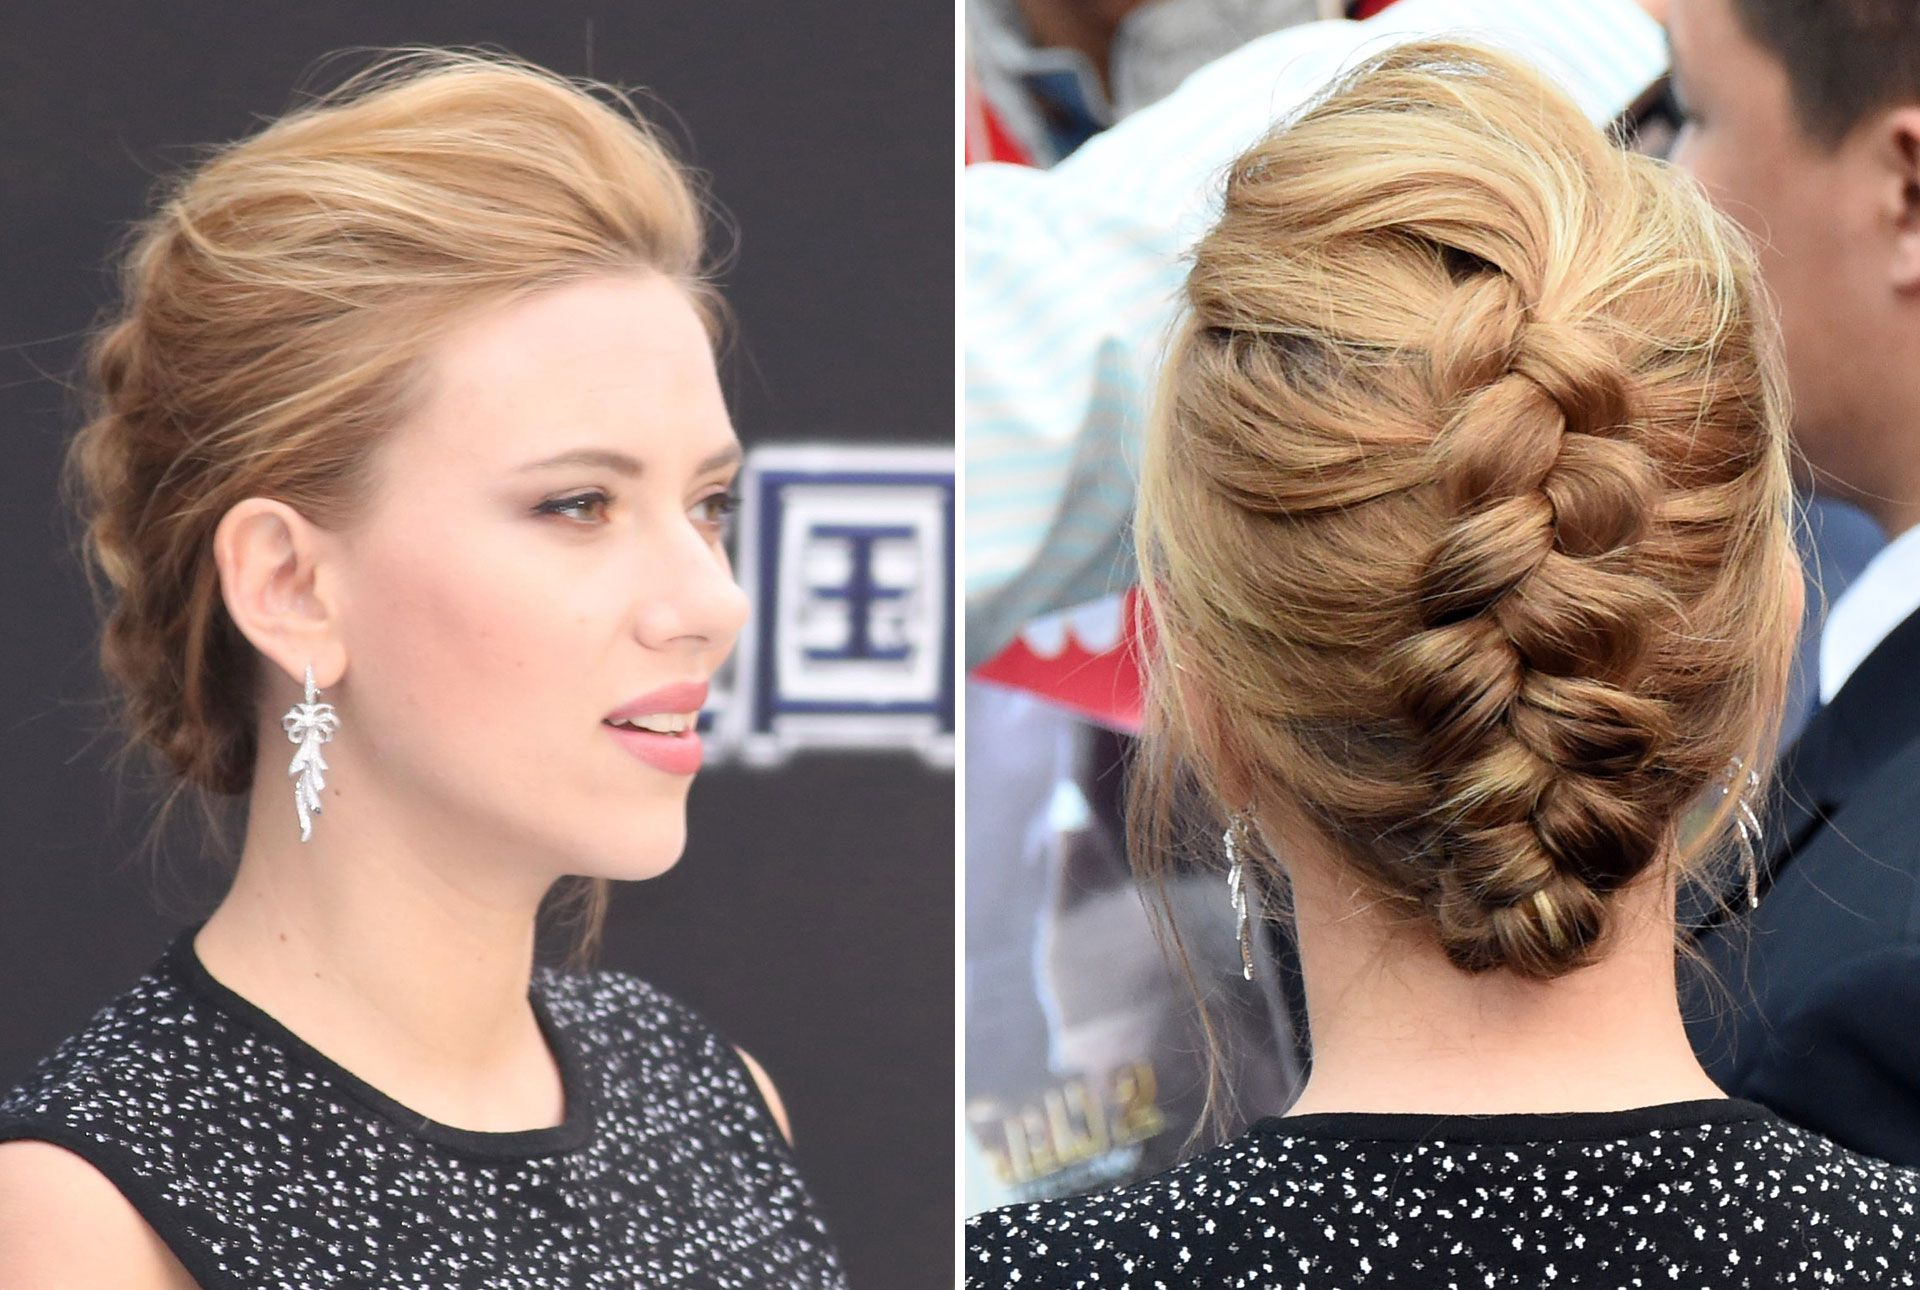 Aligned-Mid-Braid-Hairstyle Classy and Charming Hairstyles for Wedding Guest